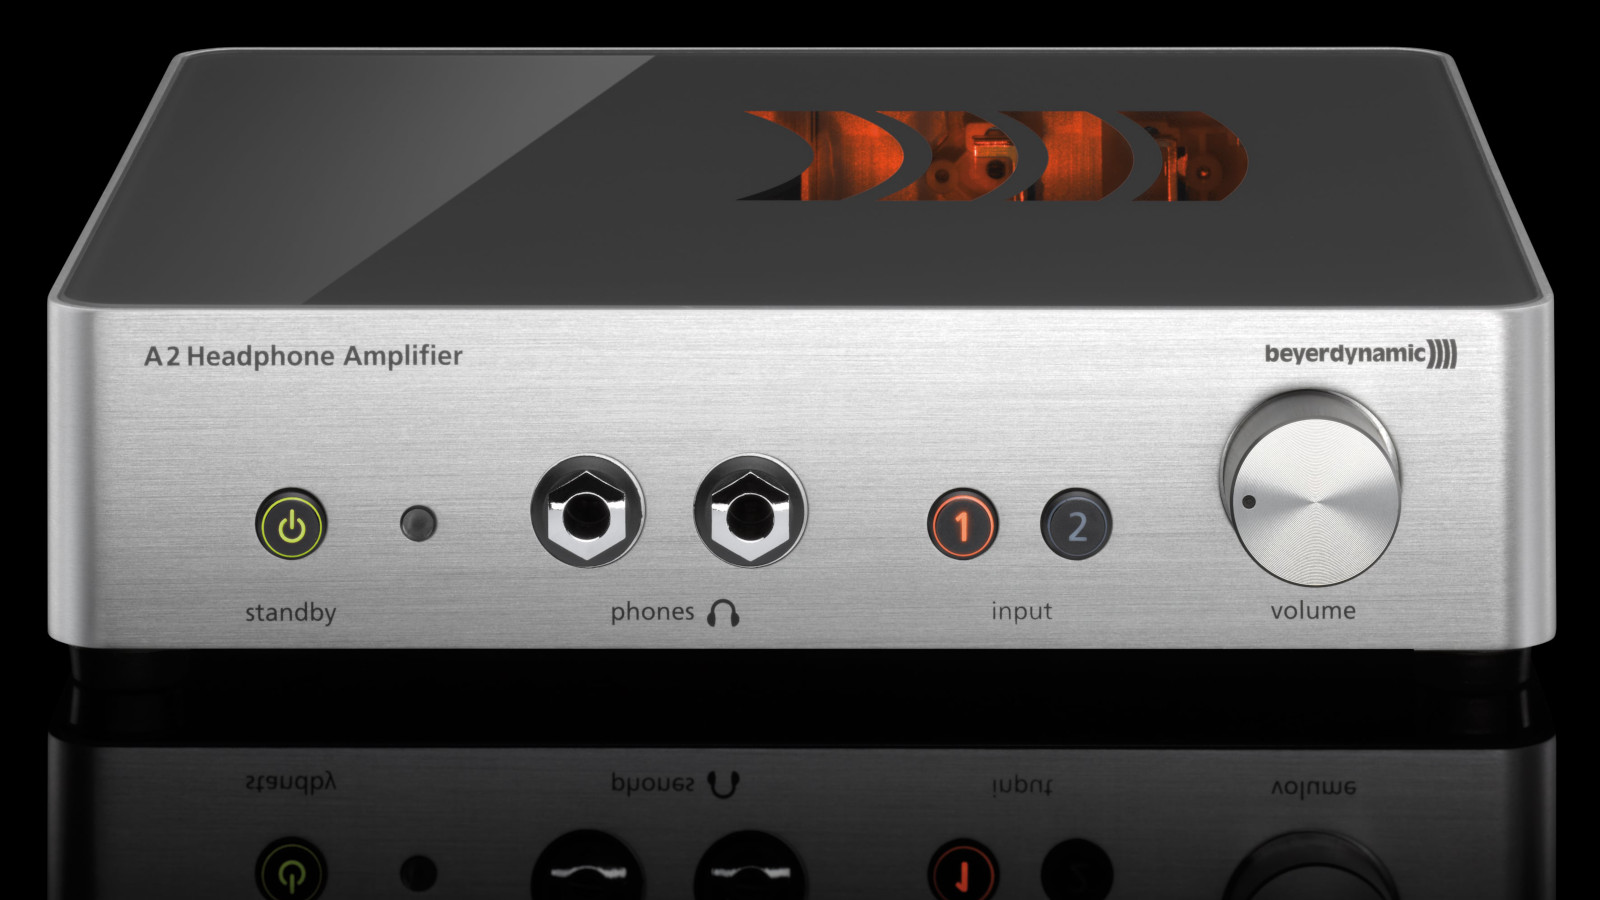 Beyerdynamic-A2-headphoneamplifier4